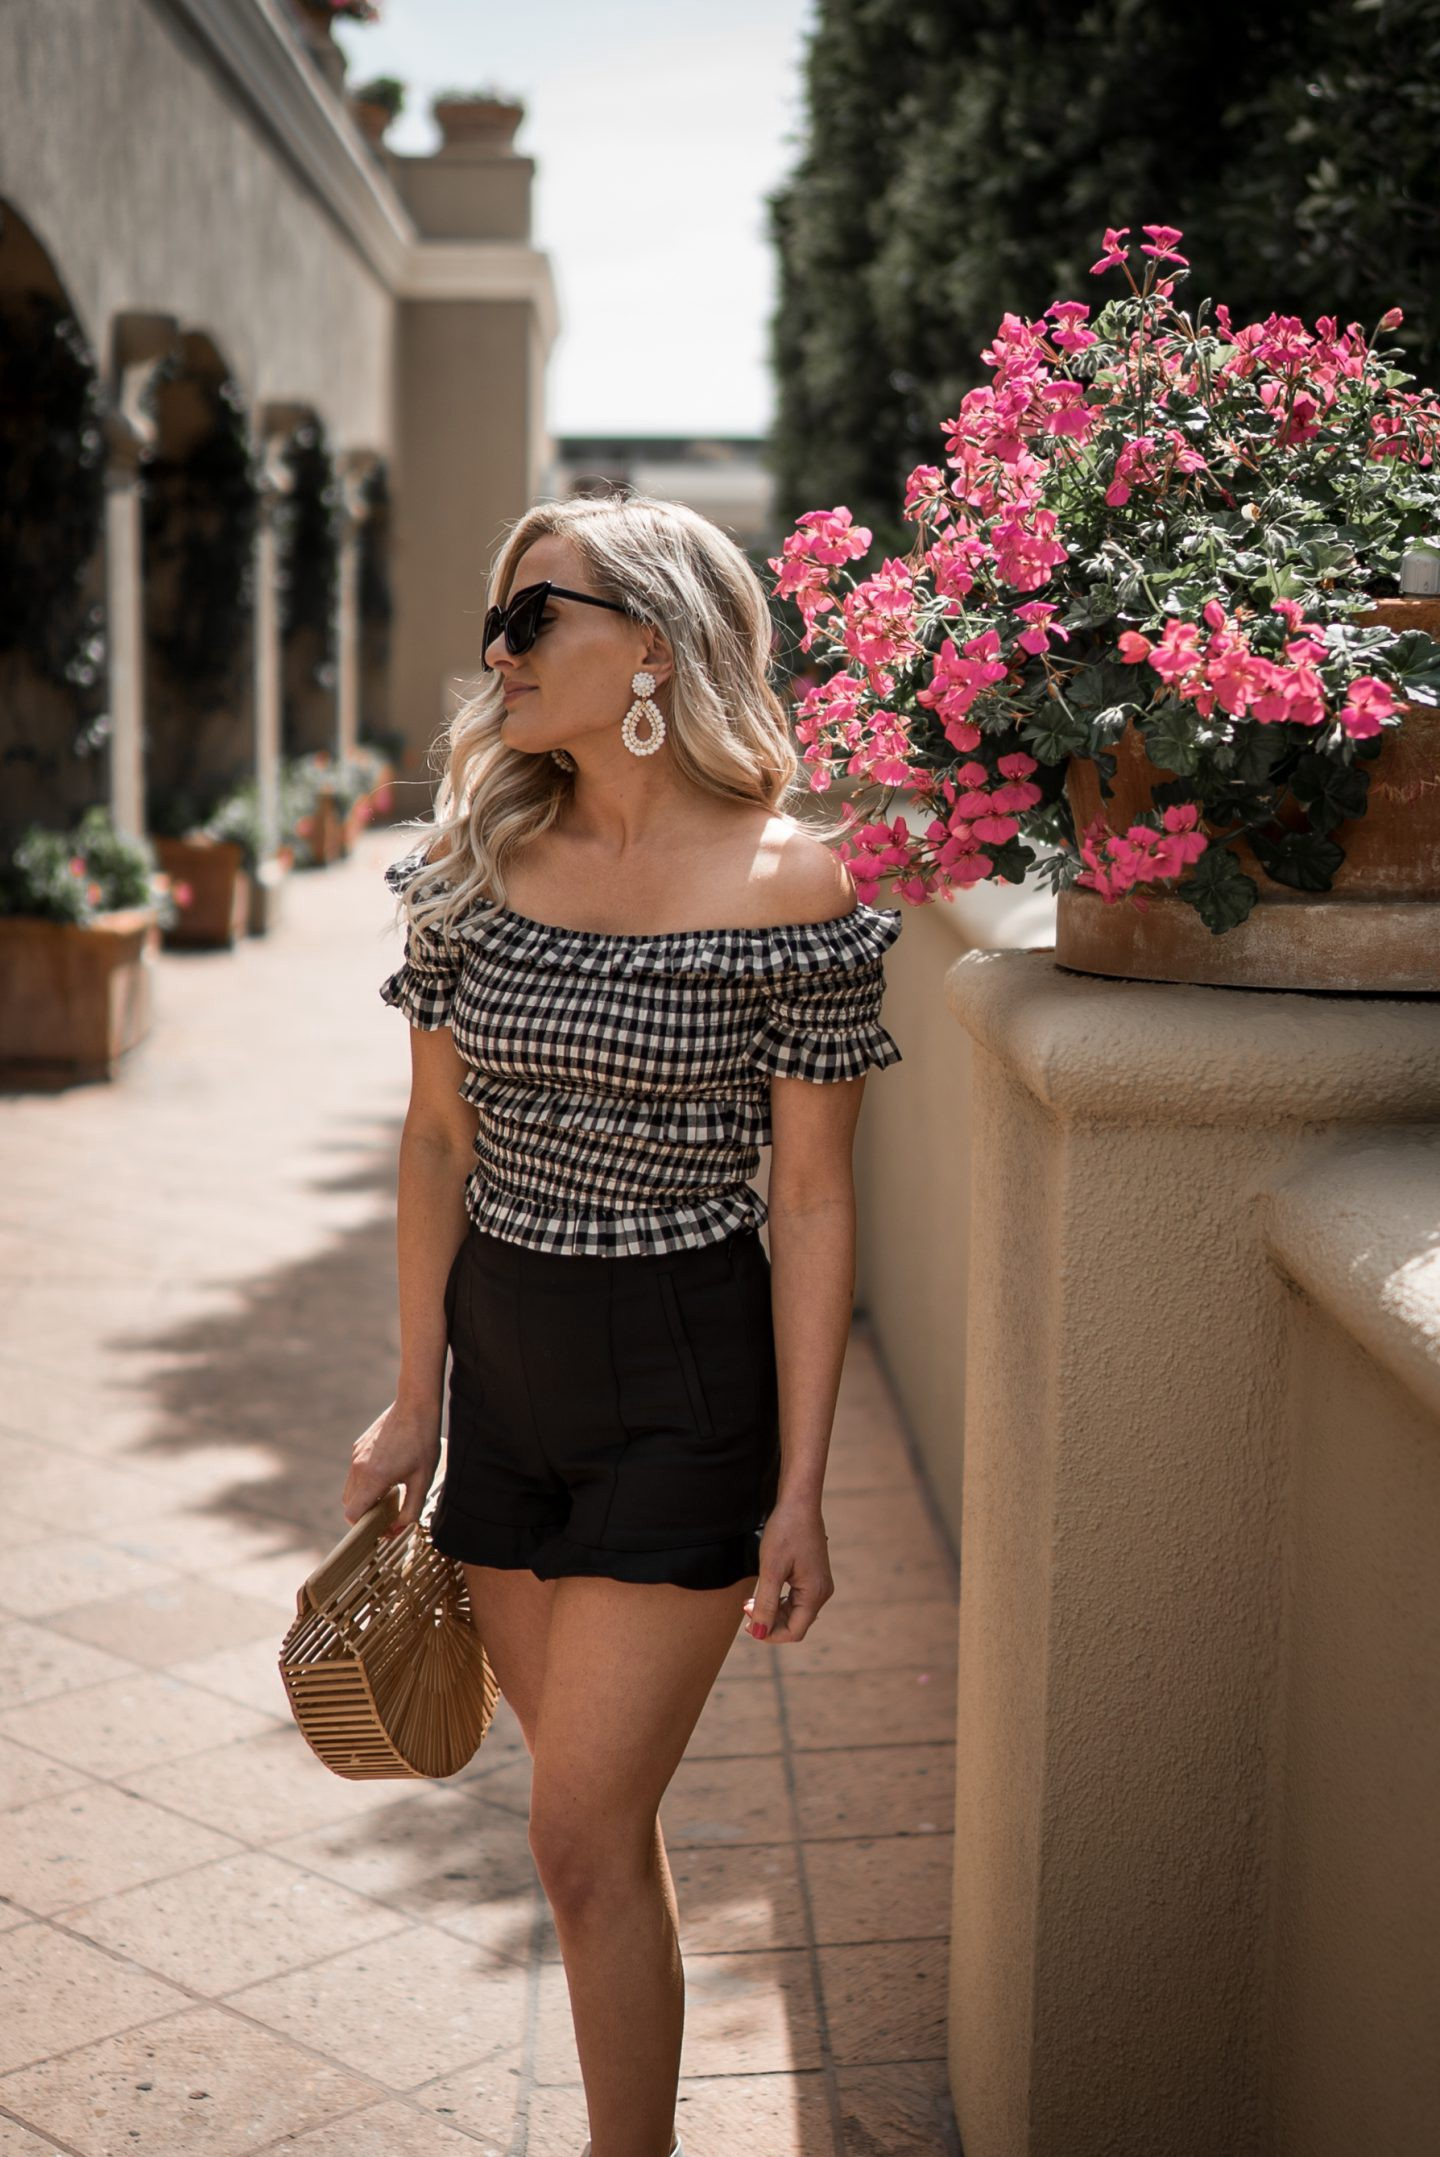 Gingham Outfit styled by popular Orange County fashion blogger Dress Me Blonde